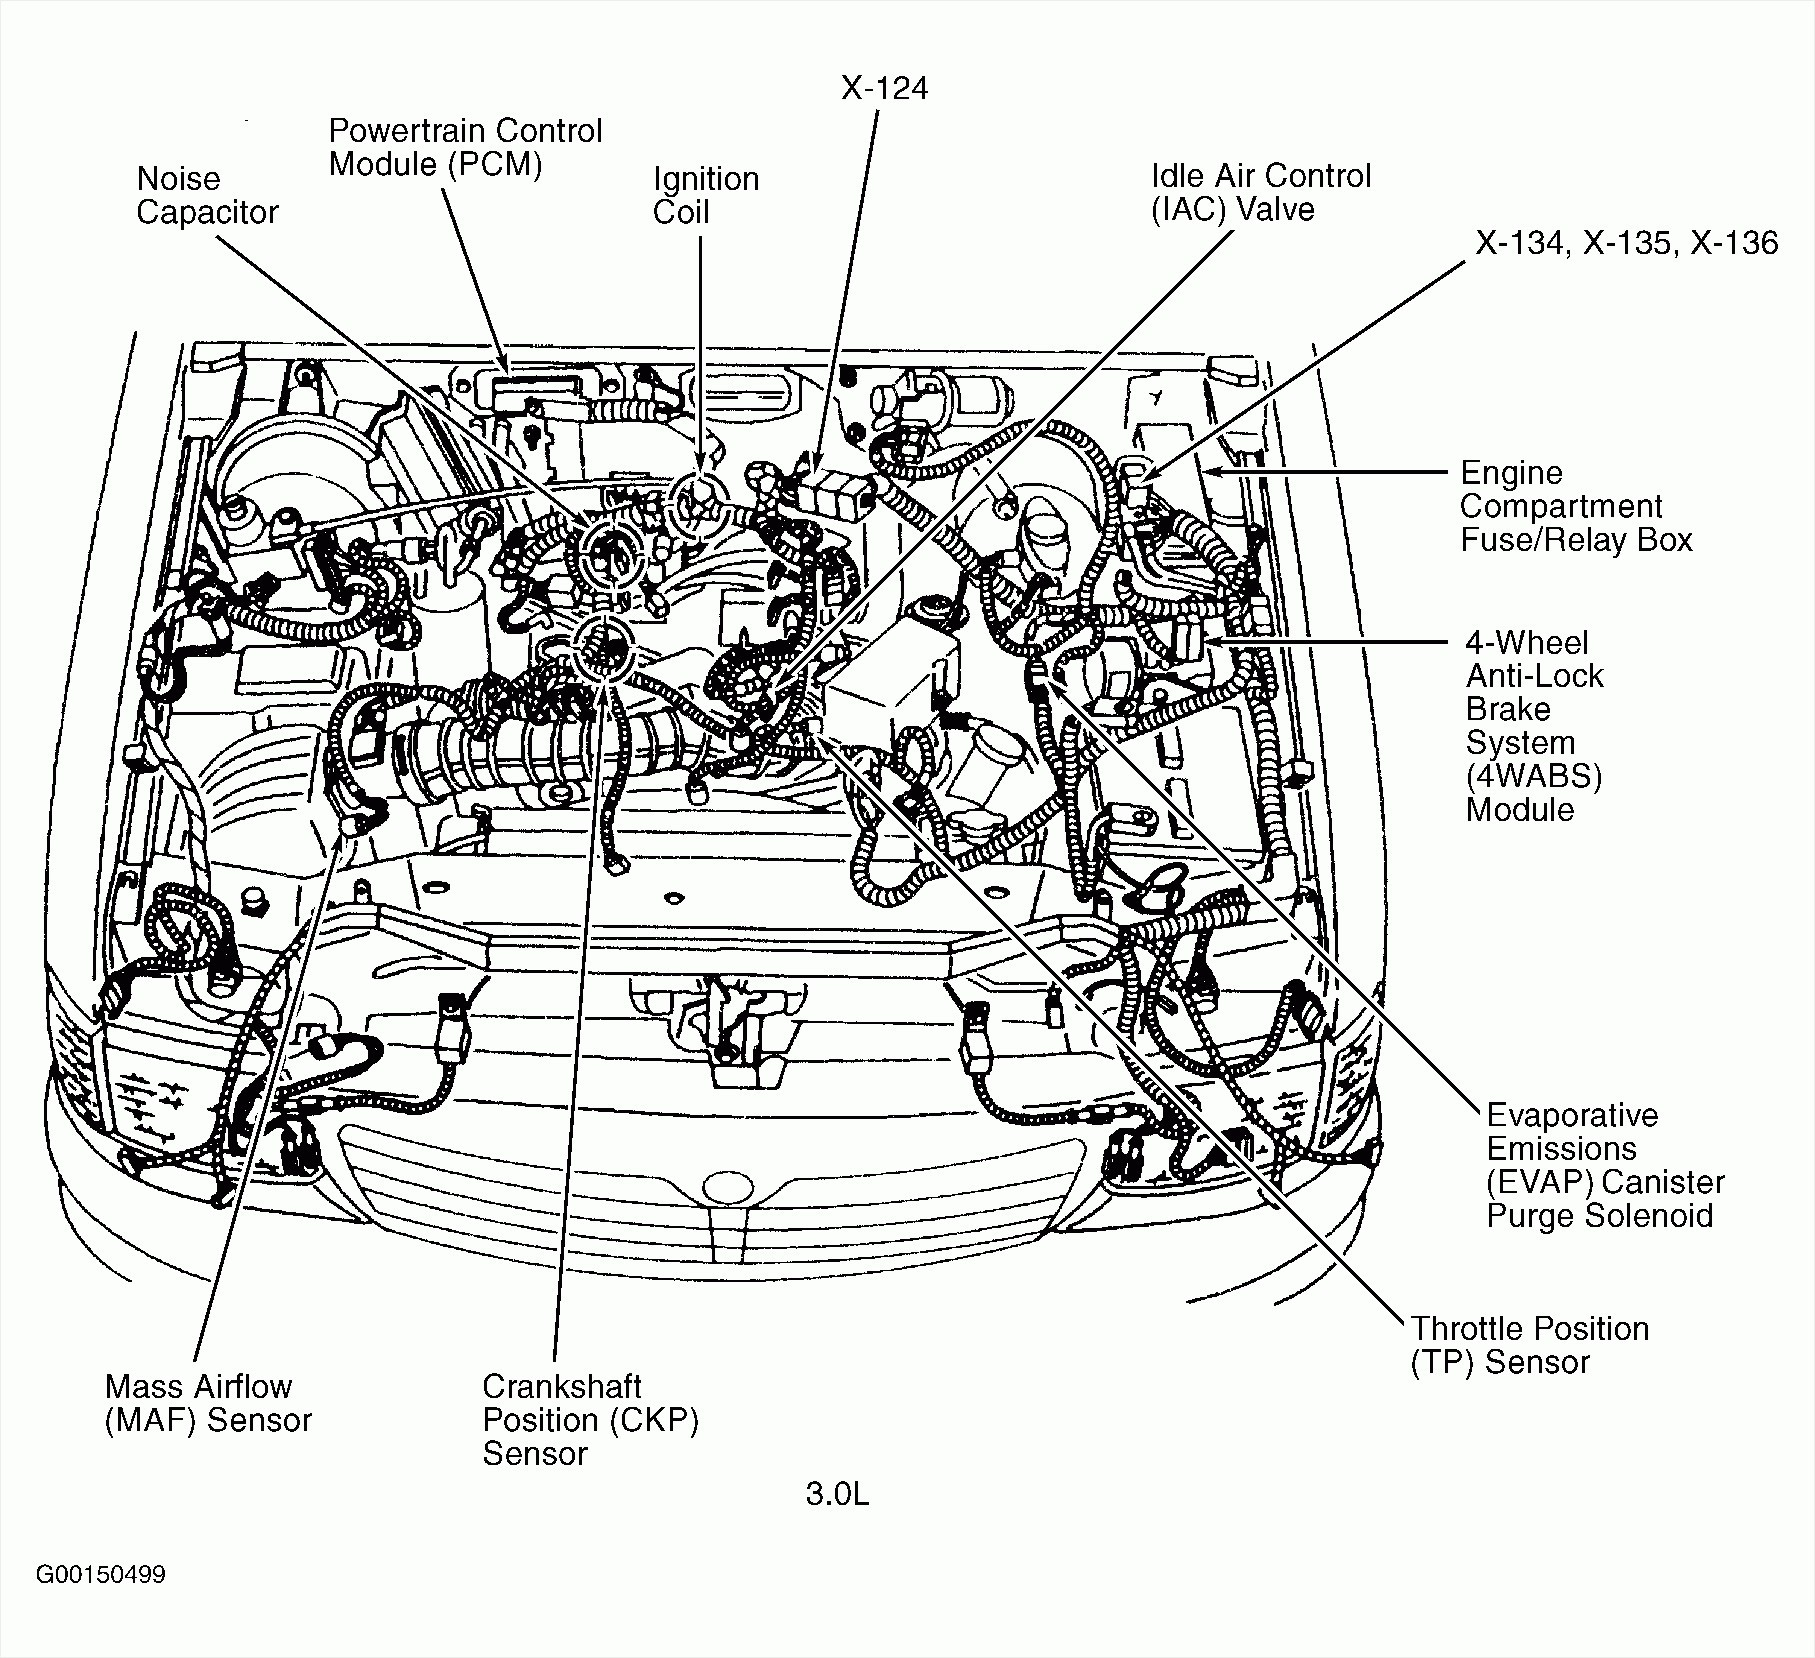 kf dohc v6 engine diagram schematics wiring diagrams u2022 rh orwellvets co 1998 ford ranger 4.0 engine wiring diagram 98 ford ranger 3.0 engine diagram